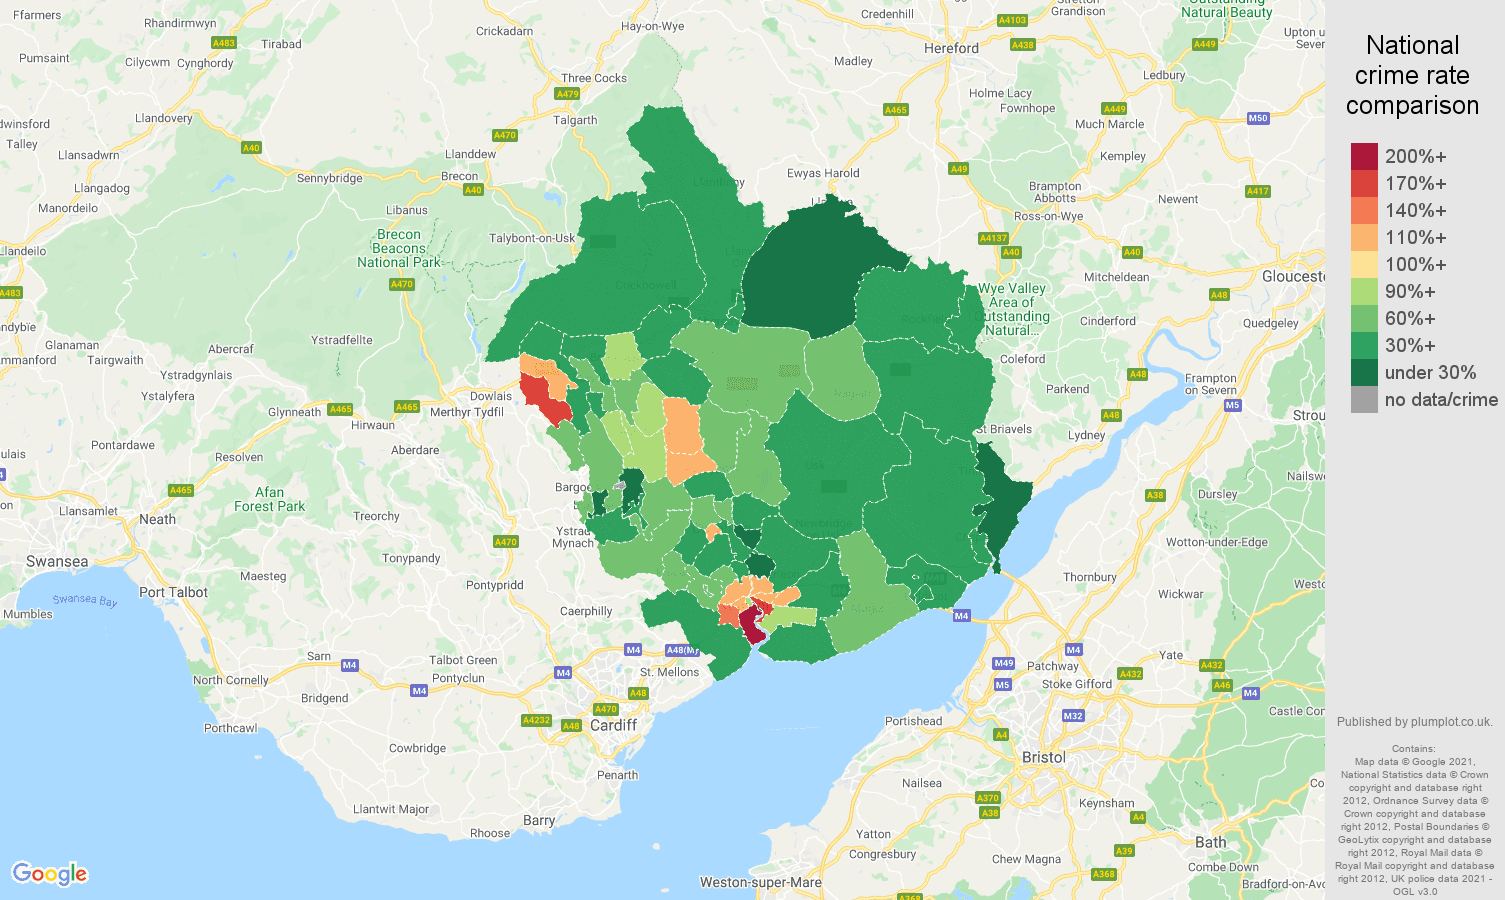 Newport vehicle crime rate comparison map